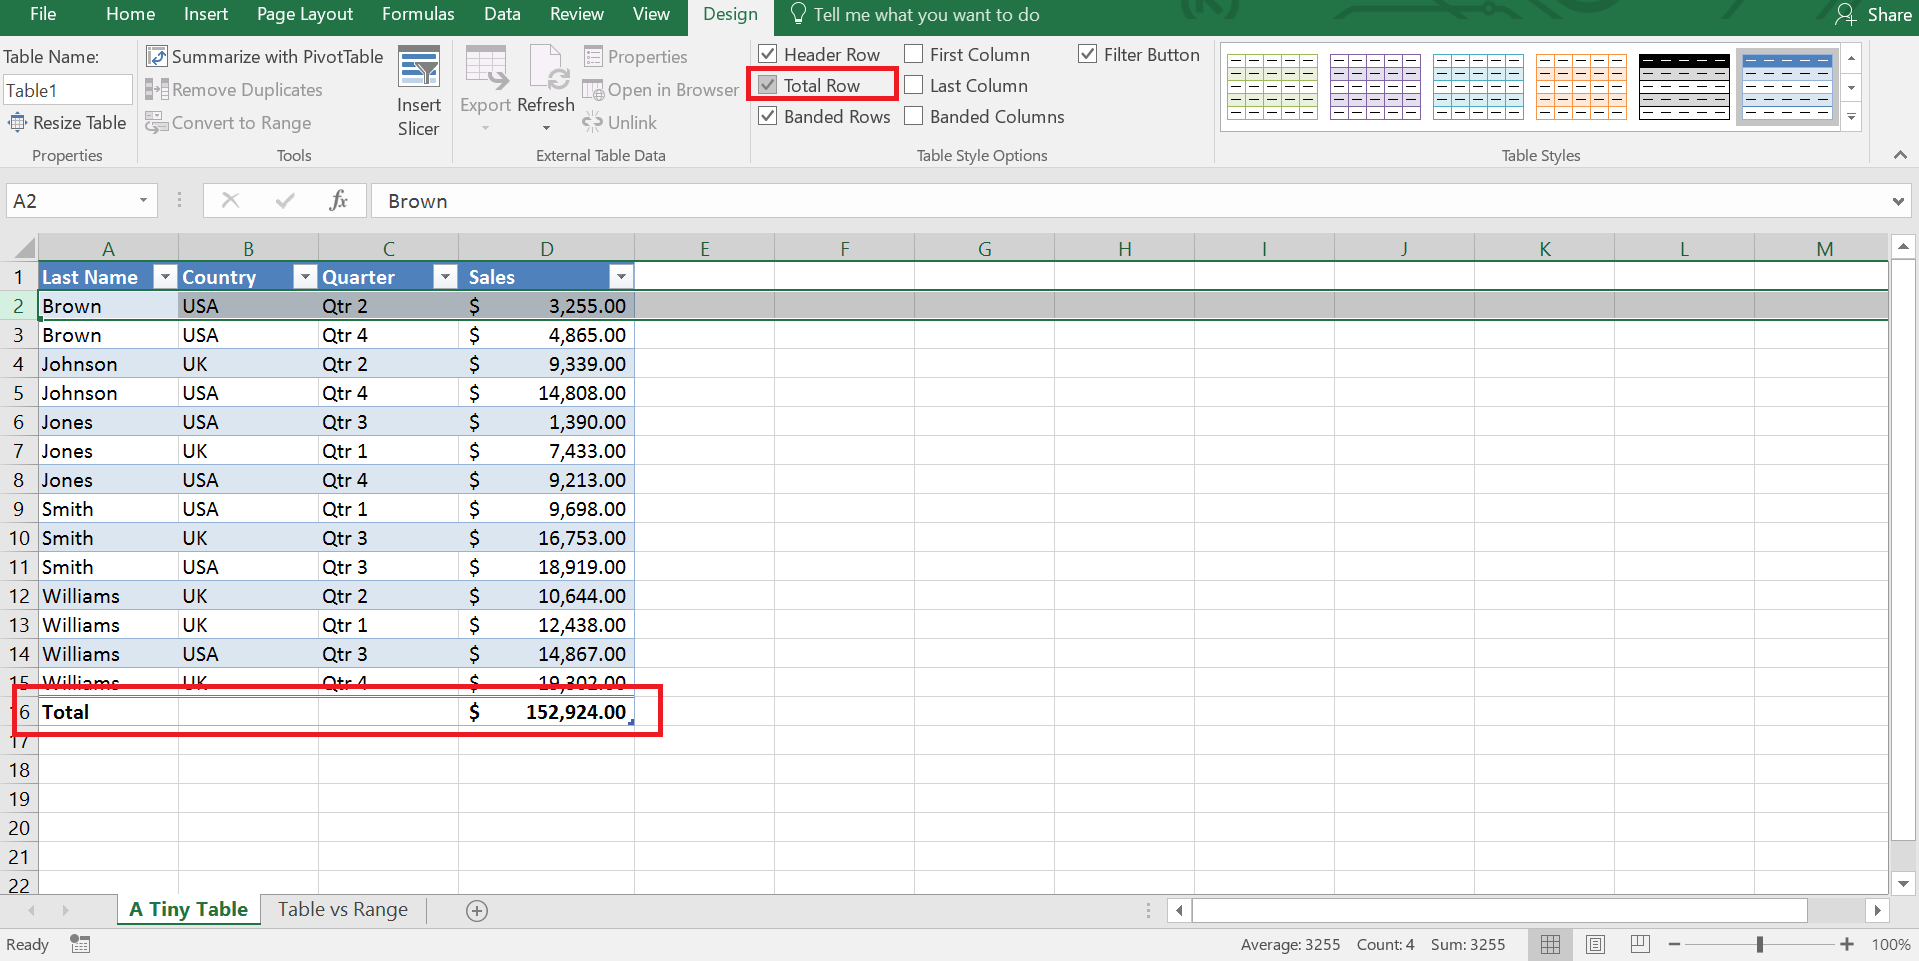 how to find sum of a row in excel